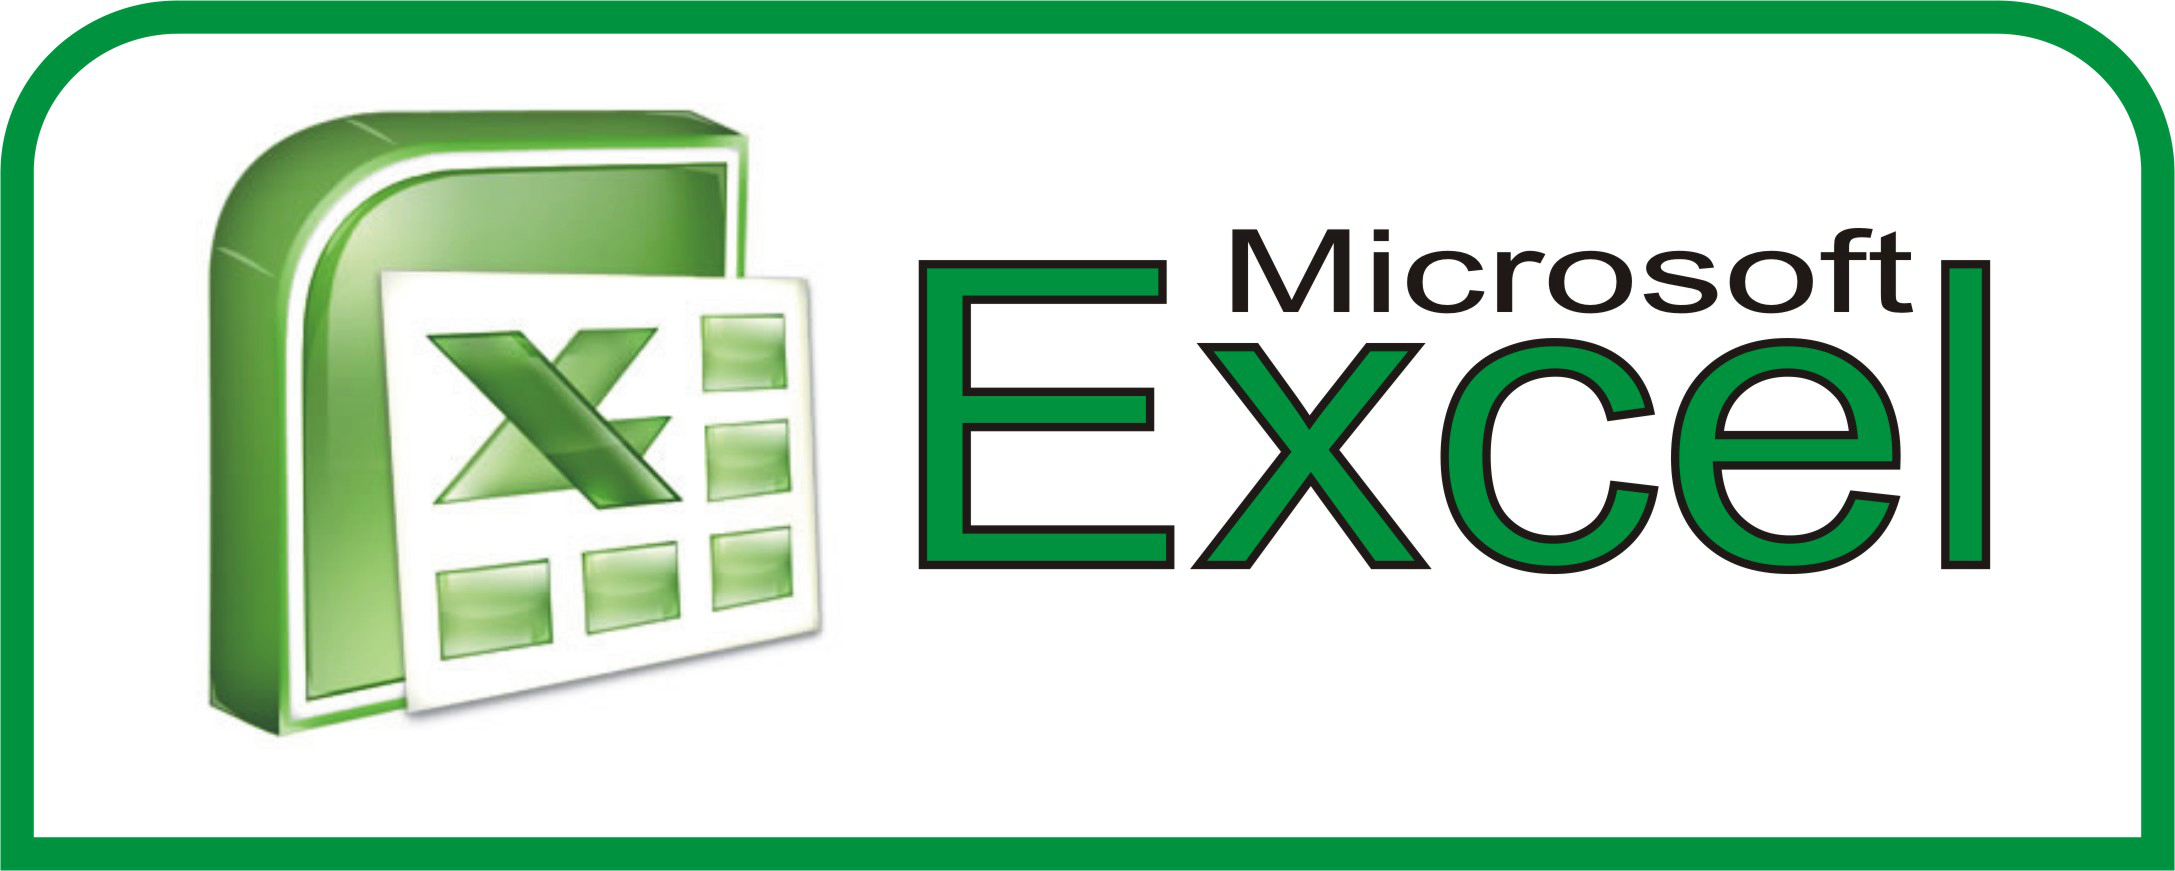 Ediblewildsus  Fascinating  Excel Shortcuts You Probably Didnt Know About  Techdissected With Marvelous Create Excel Graph Besides Cells Vba Excel Furthermore Blank Excel Spreadsheet Templates With Endearing Excel Solar Also Excel Takasago Rims In Addition Excel Vba Wait Function And Wacc Calculation Excel As Well As Write Formula In Excel Additionally Add Drop Down List Excel From Techdissectedcom With Ediblewildsus  Marvelous  Excel Shortcuts You Probably Didnt Know About  Techdissected With Endearing Create Excel Graph Besides Cells Vba Excel Furthermore Blank Excel Spreadsheet Templates And Fascinating Excel Solar Also Excel Takasago Rims In Addition Excel Vba Wait Function From Techdissectedcom